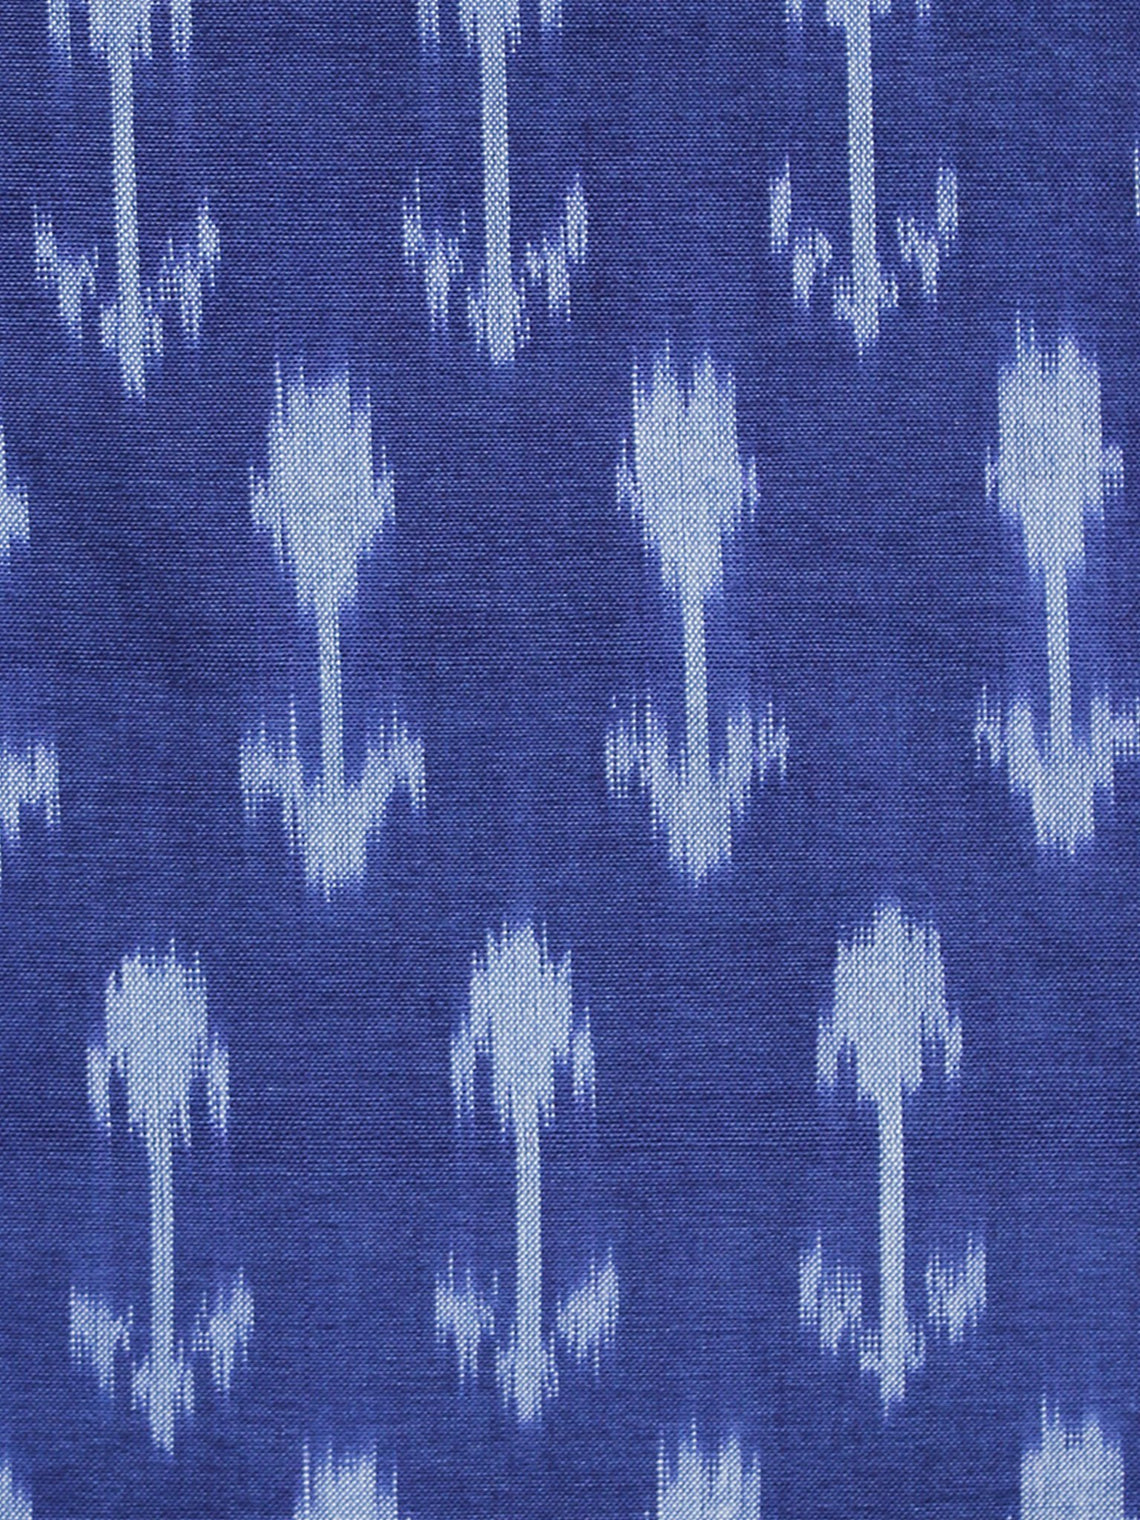 Sapphire Blue Pochampally Hand Weaved Ikat Mercerised Fabric Per Meter - F003F1285